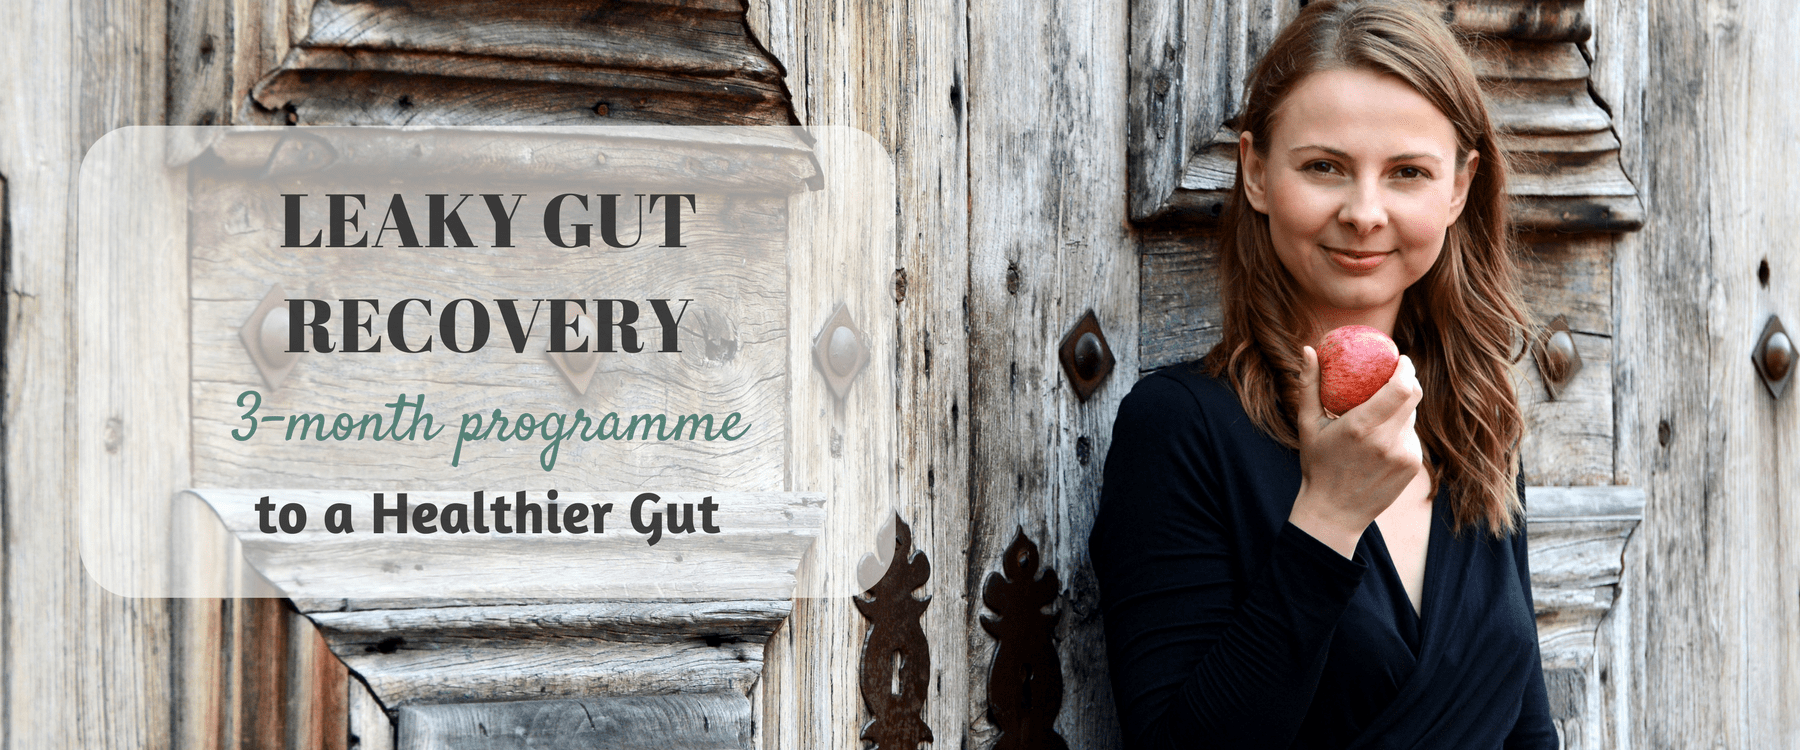 leaky gut london